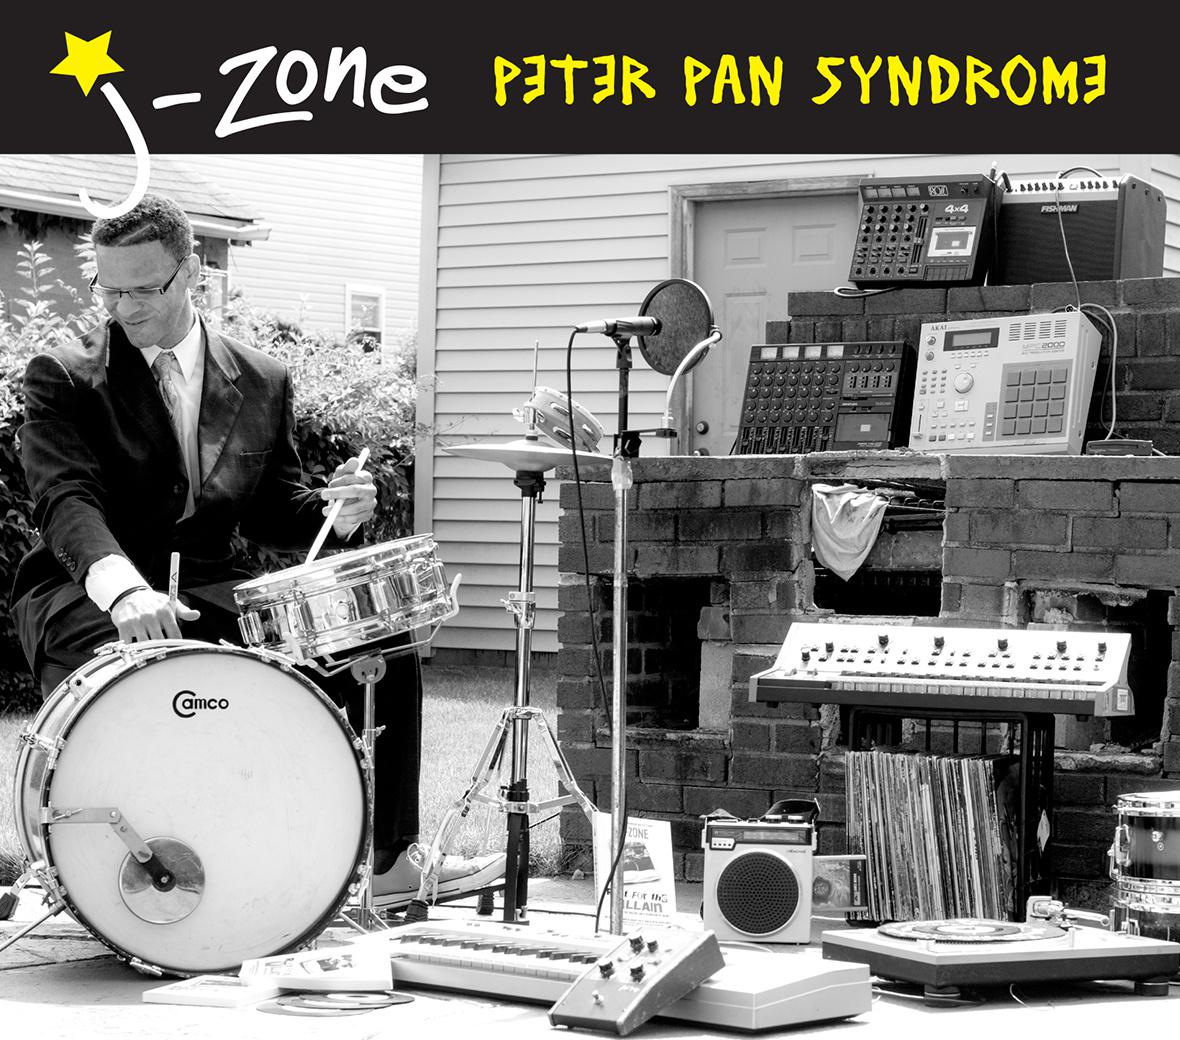 J-Zone - Peter Pan Syndrome  (2013) [MULTI]